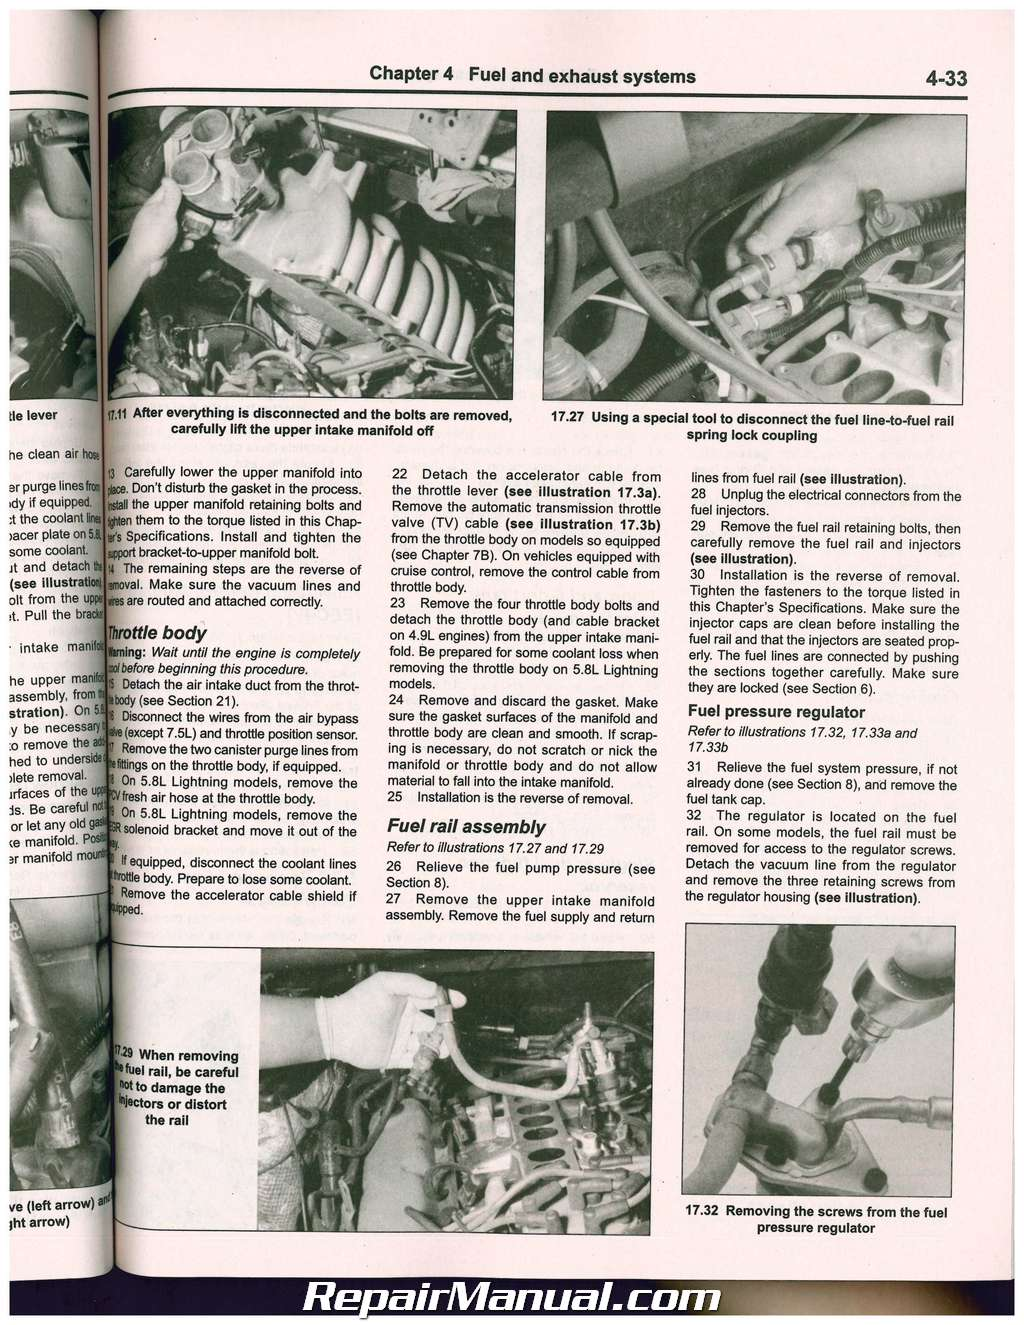 Ford Pickup Trucks Bronco 2wd 4wd 1980 1997 Haynes Auto Repair Manual F350 System Wiring Diagram Service And